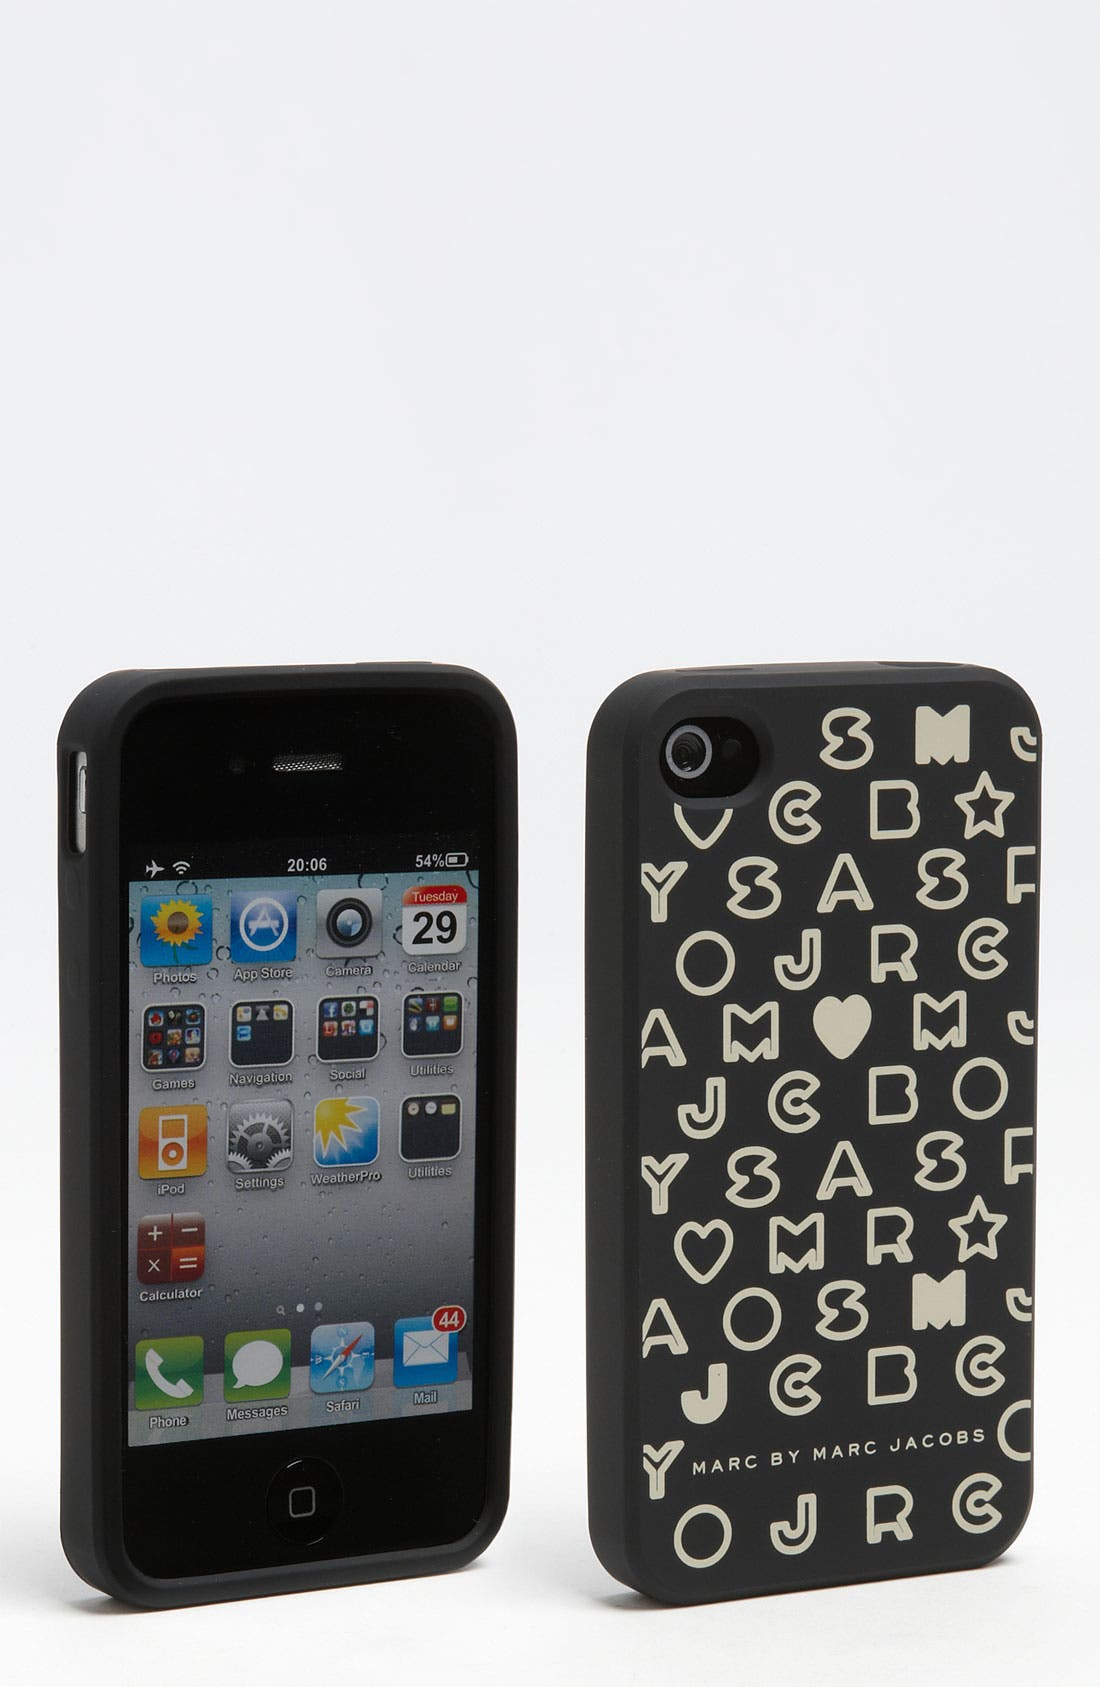 Main Image - MARC BY MARC JACOBS 'Stardust' iPhone 4 & 4S Case